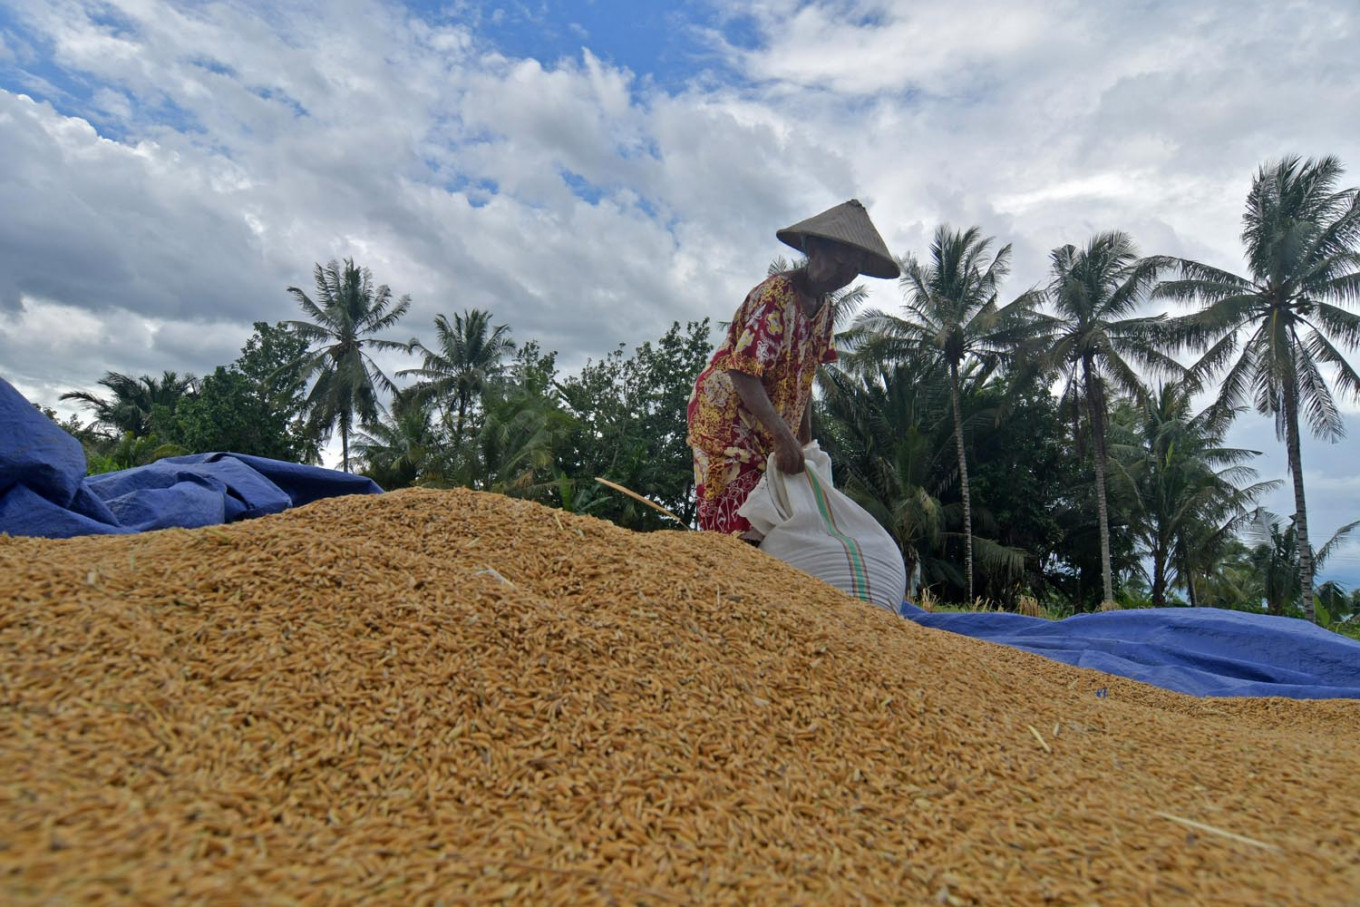 Agriculture Ministry asks for additional funds, seeks to help farmers' recovery